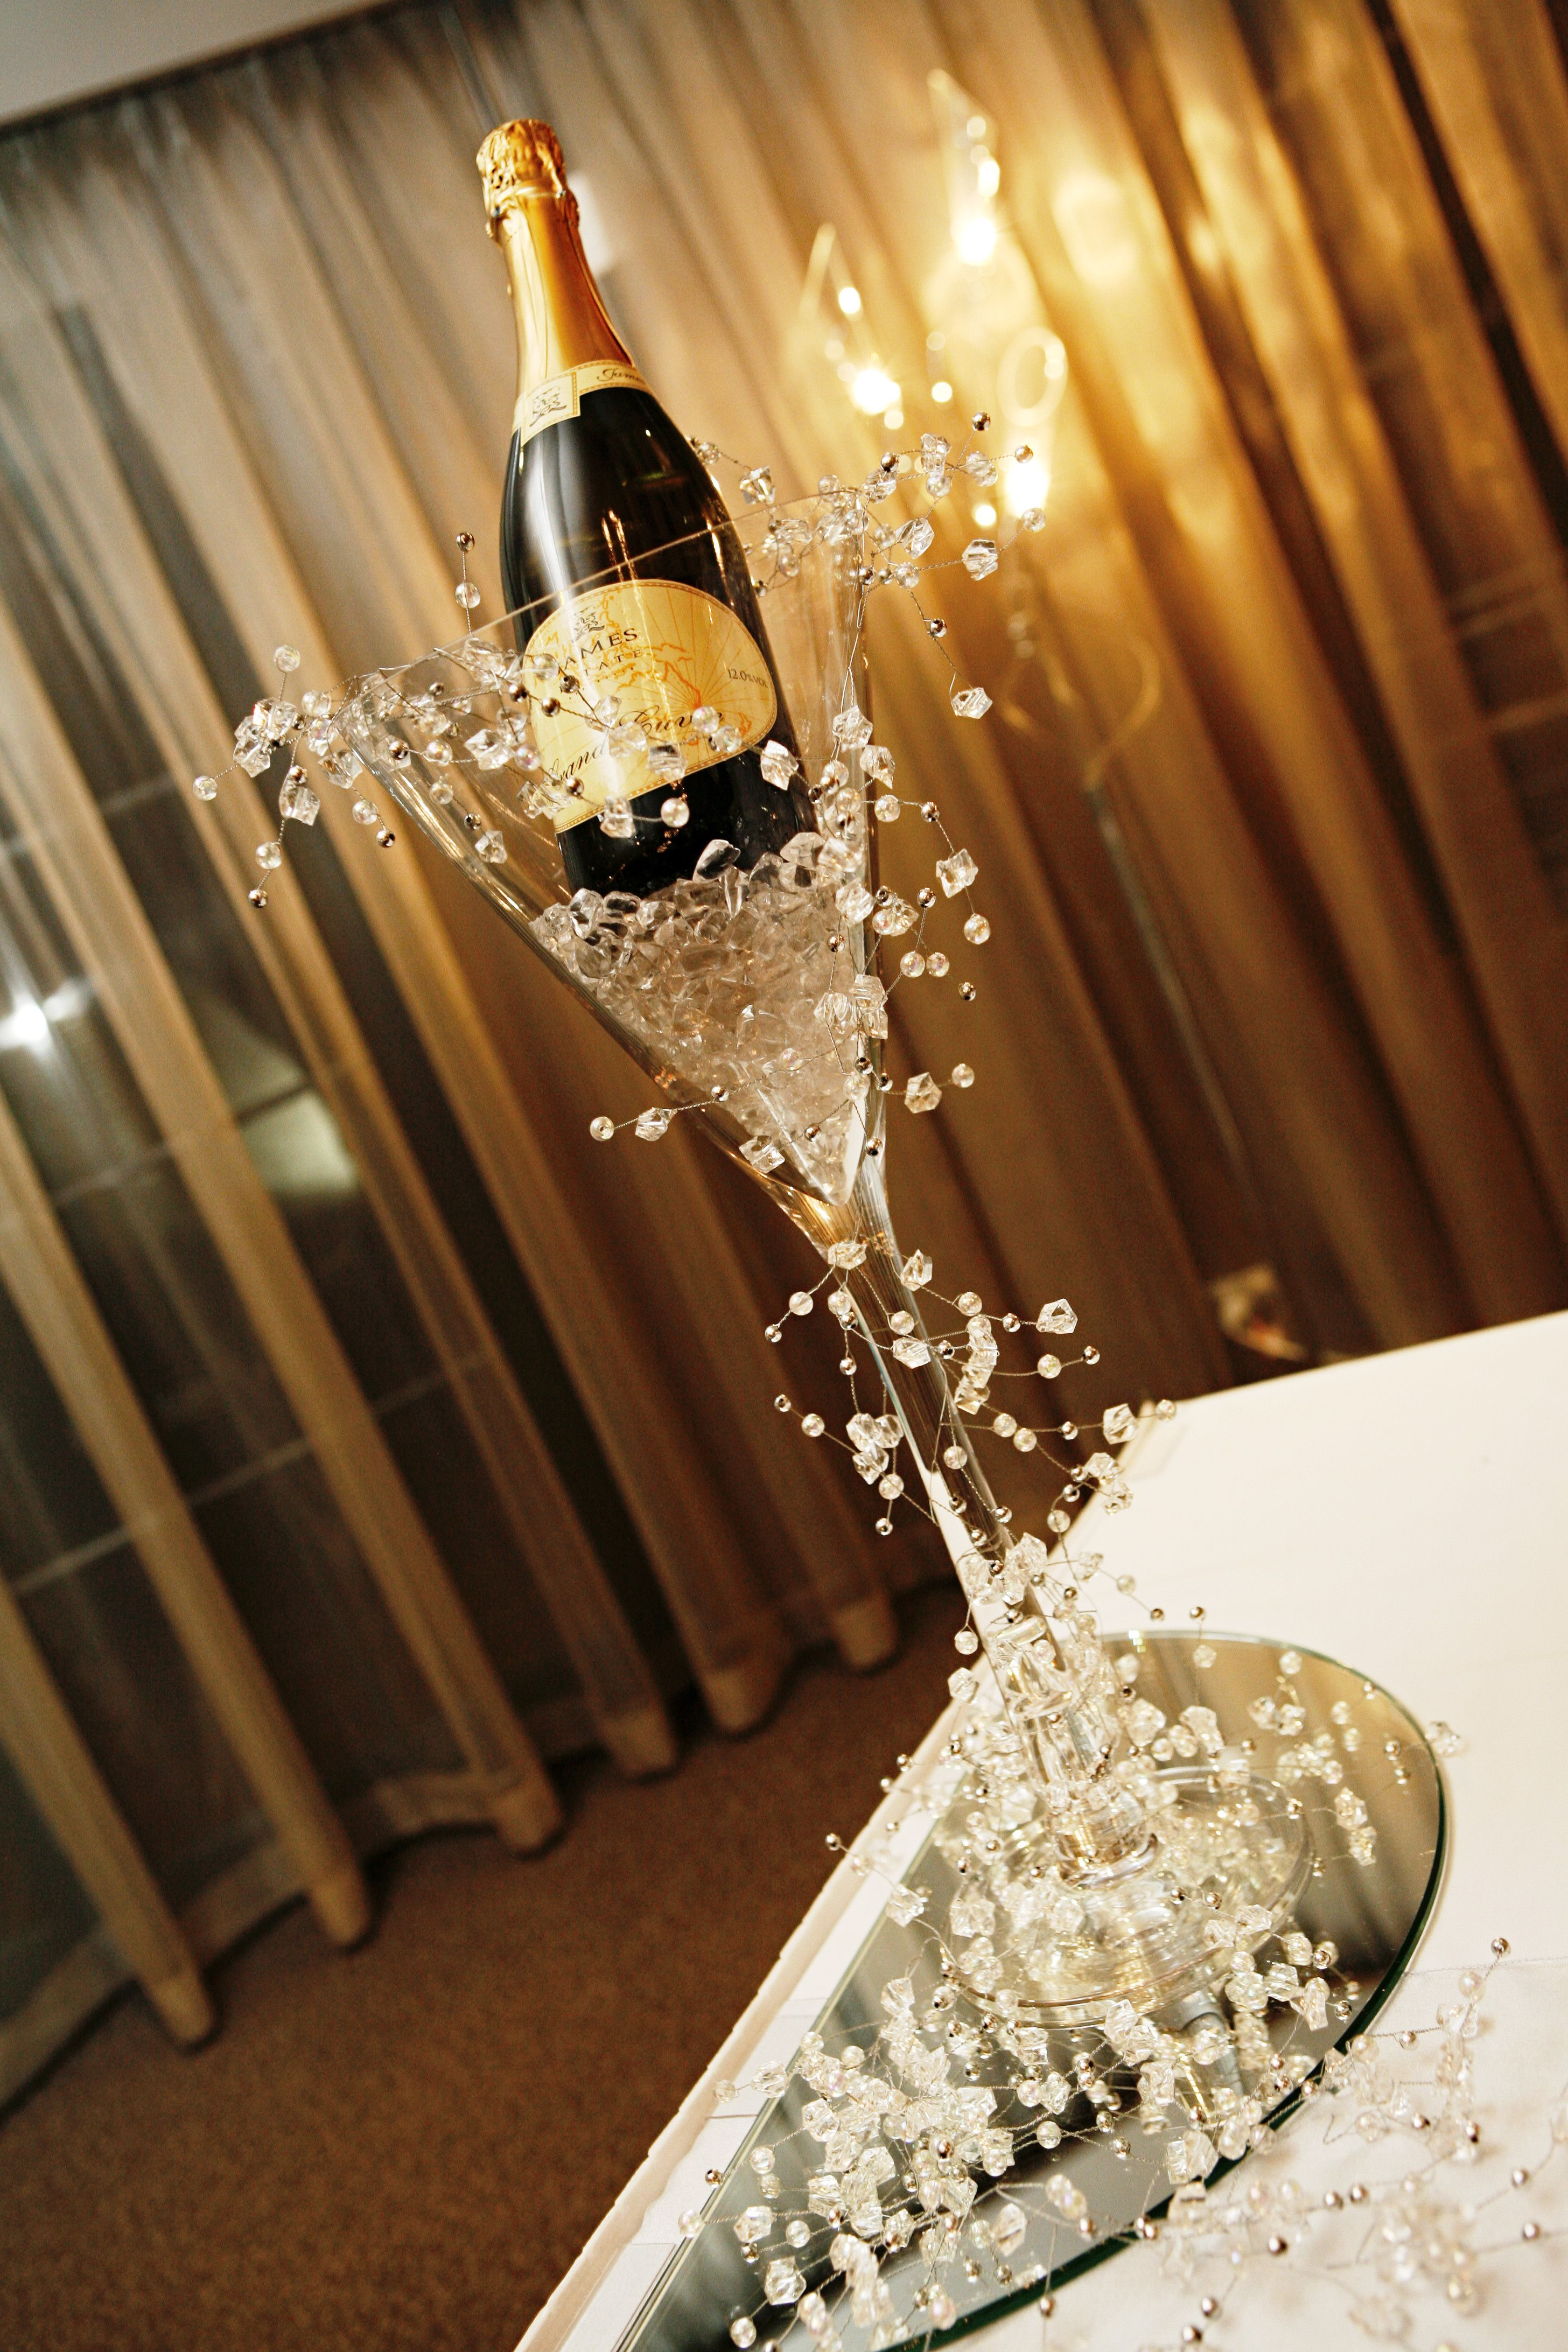 Giant Wine Glass Decorations Large Martini Vase With Ice And Champagne With Silver